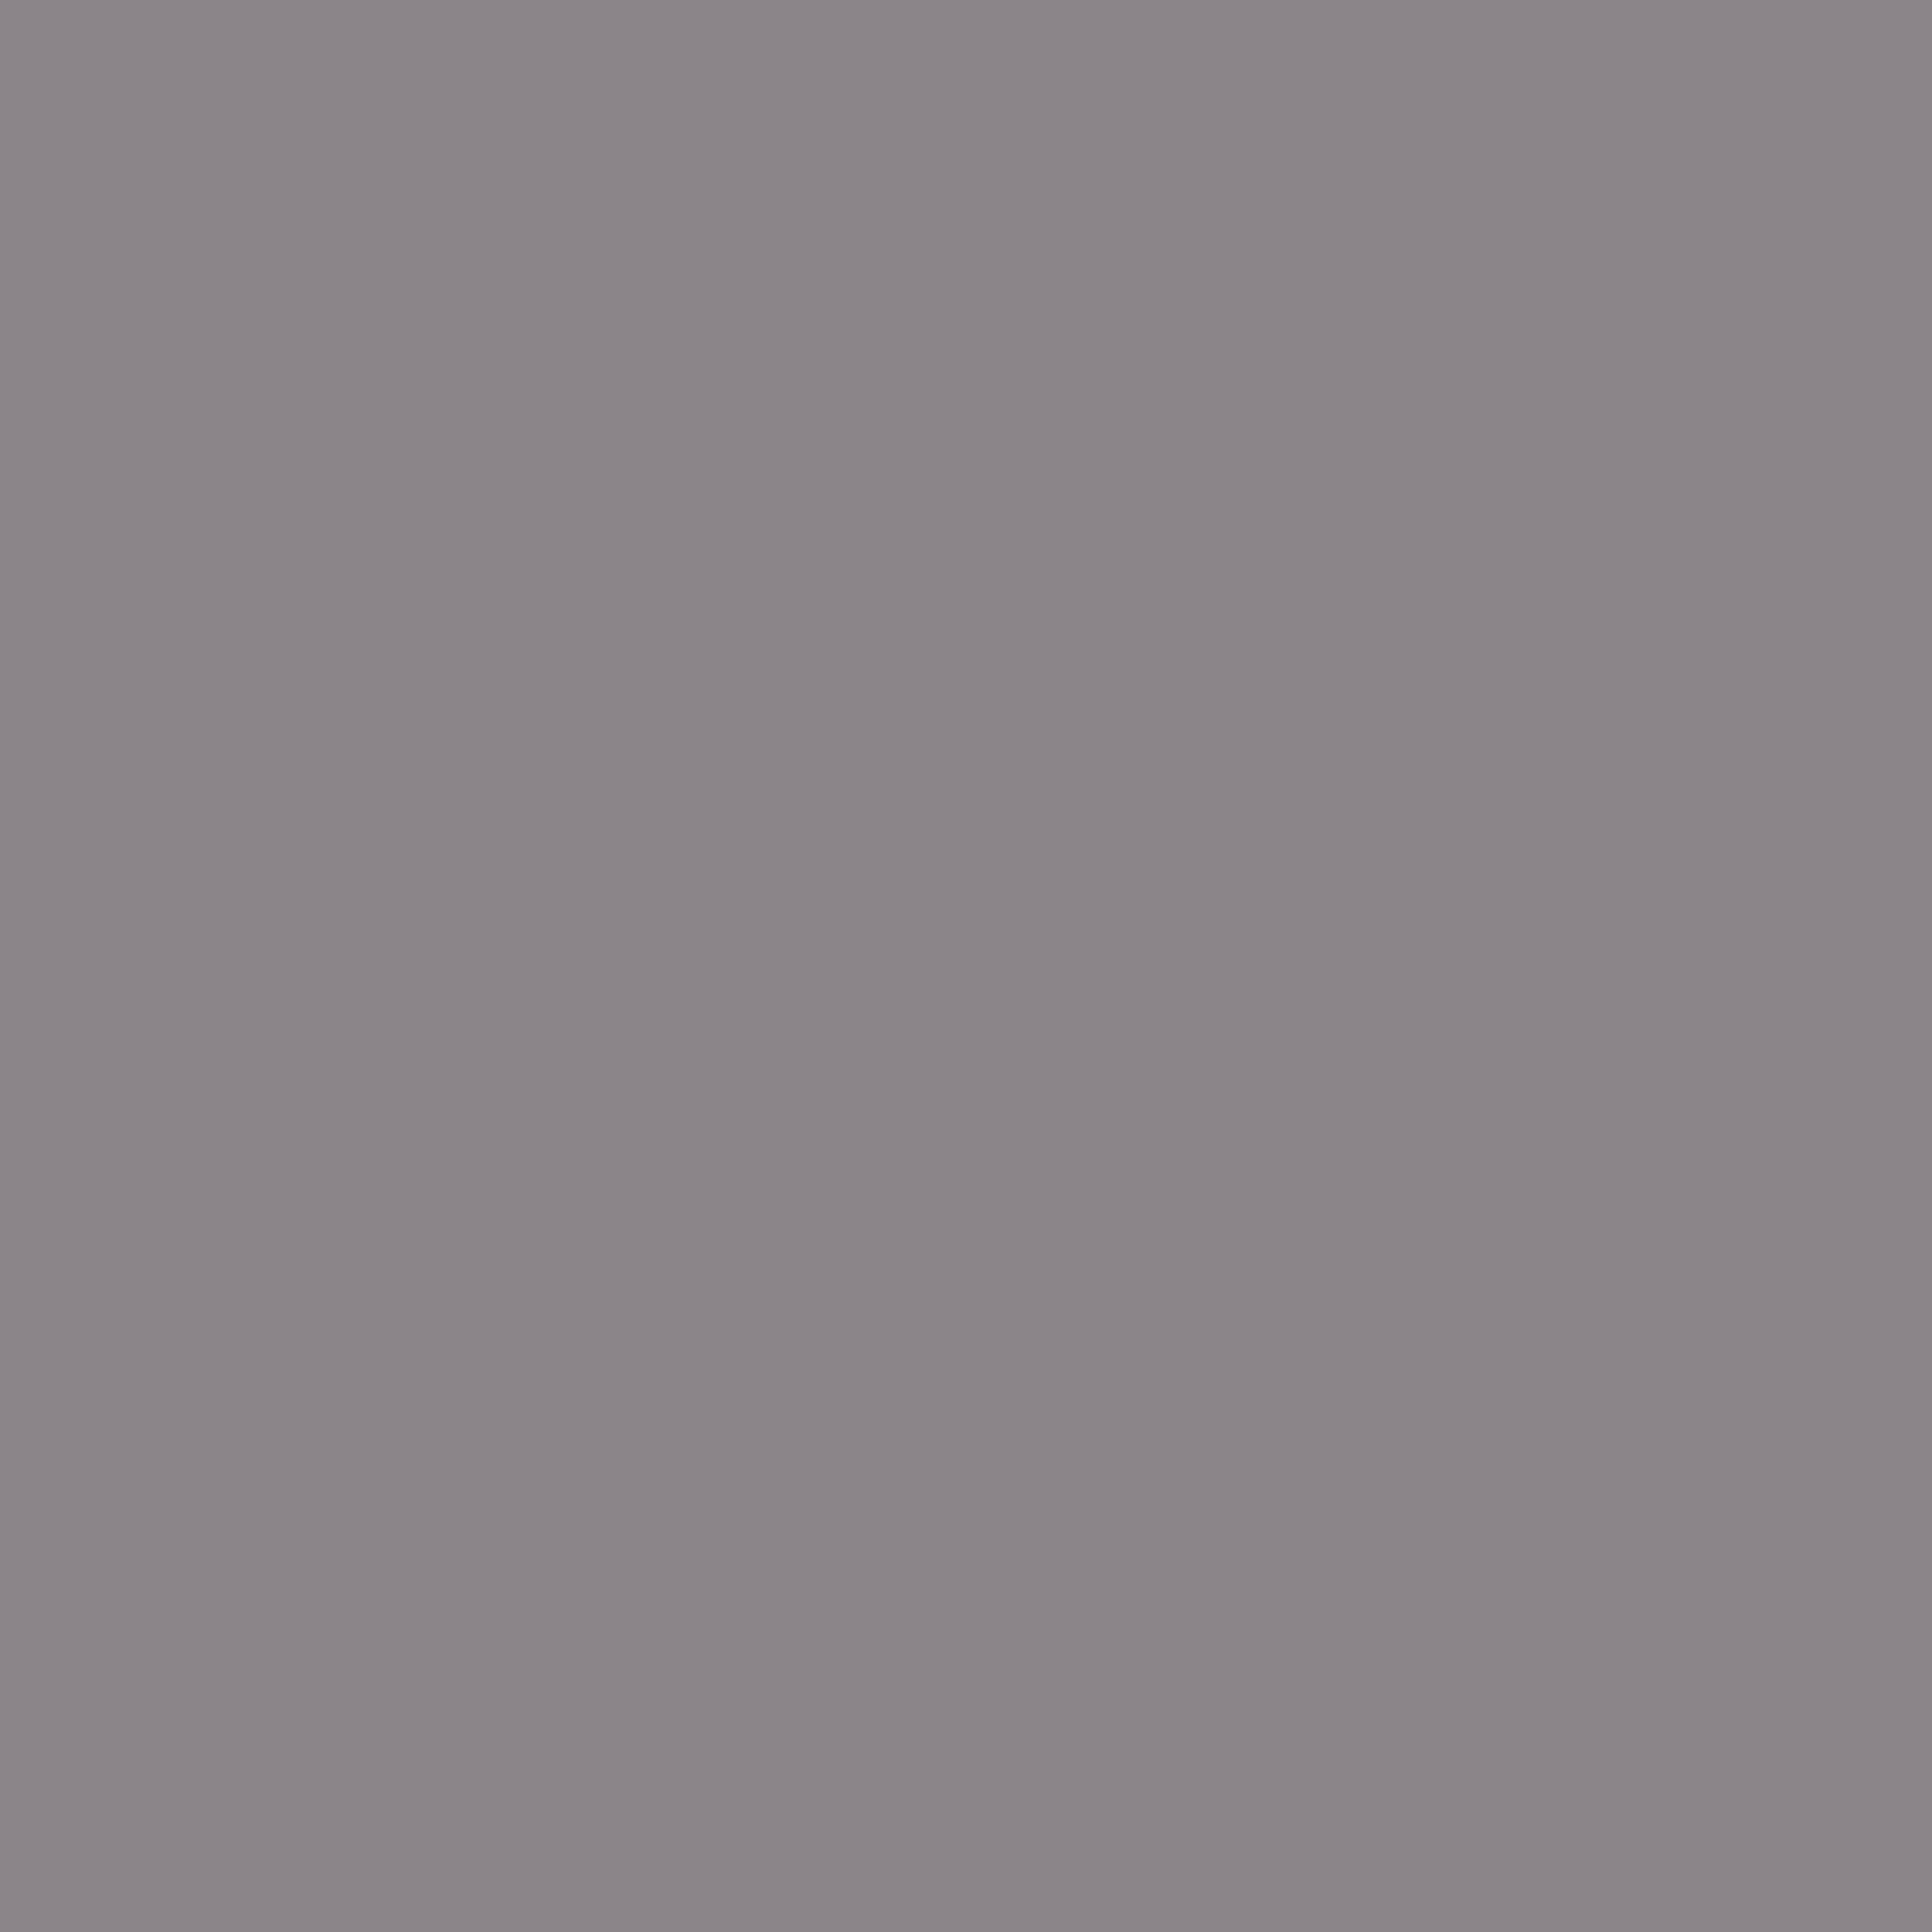 2048x2048 Taupe Gray Solid Color Background